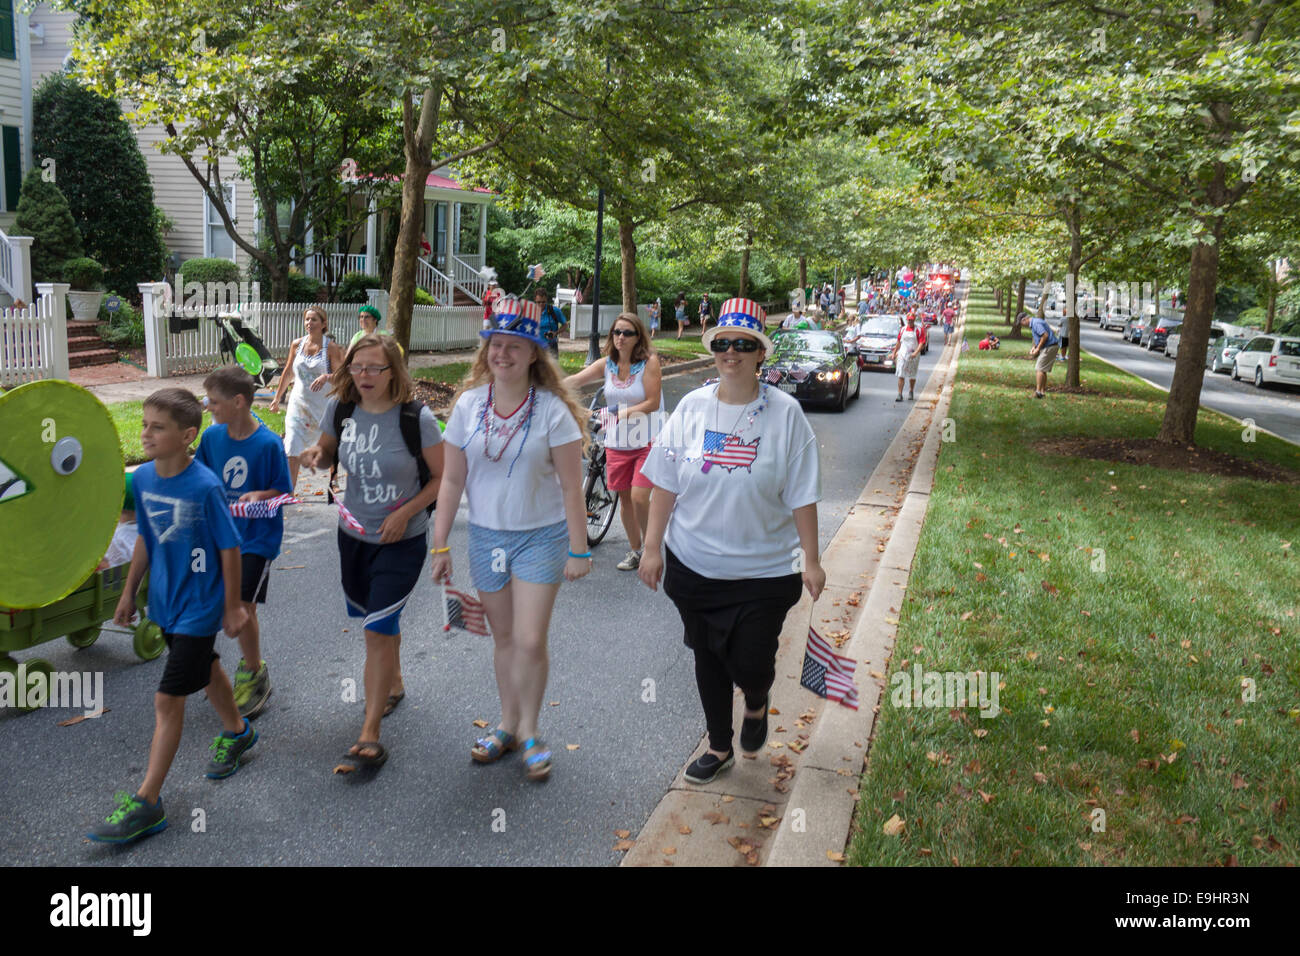 Fourth of July Parade - Stock Image